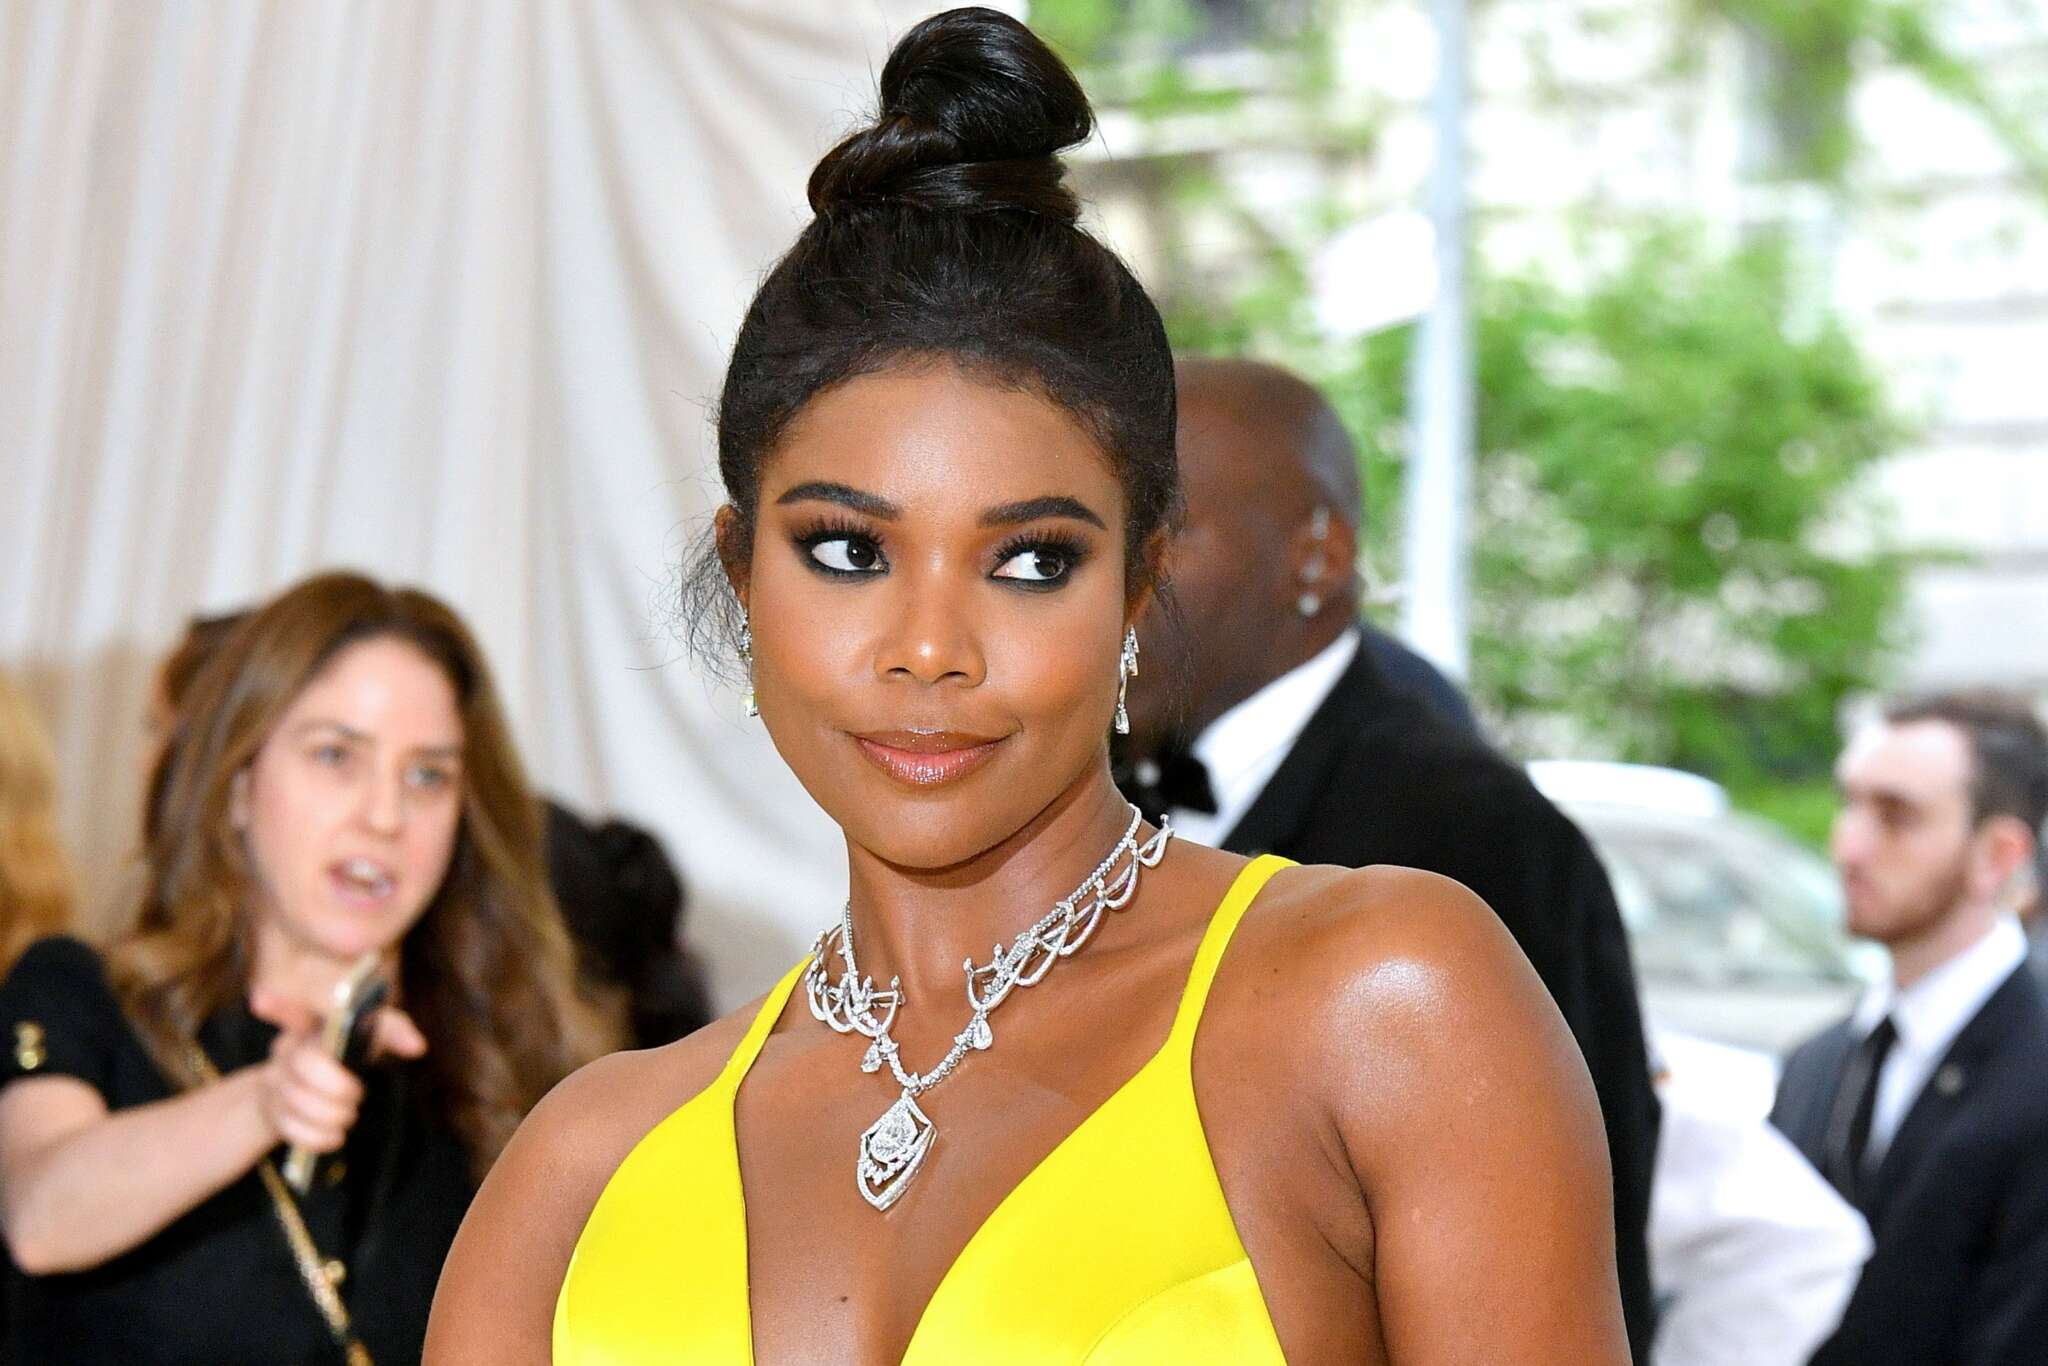 Gabrielle Union Shares New Video Featuring Kaavia James And Makes